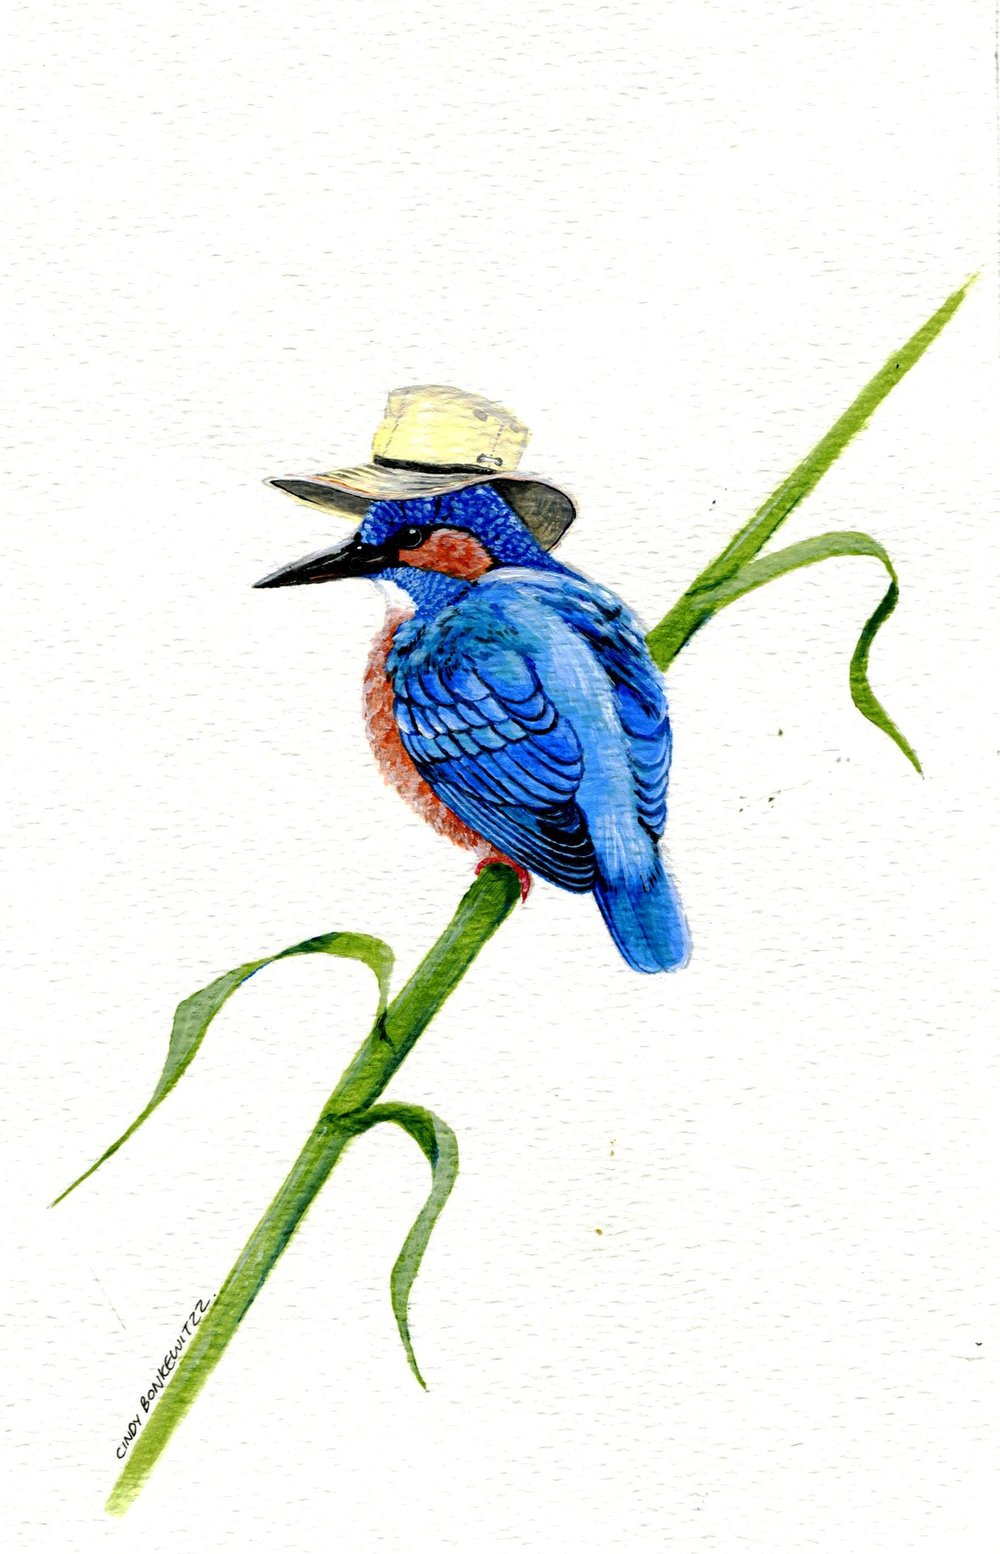 54A CINDY BONKEWITZZ, KINGFISHER, ACRYLIC ON PAPER